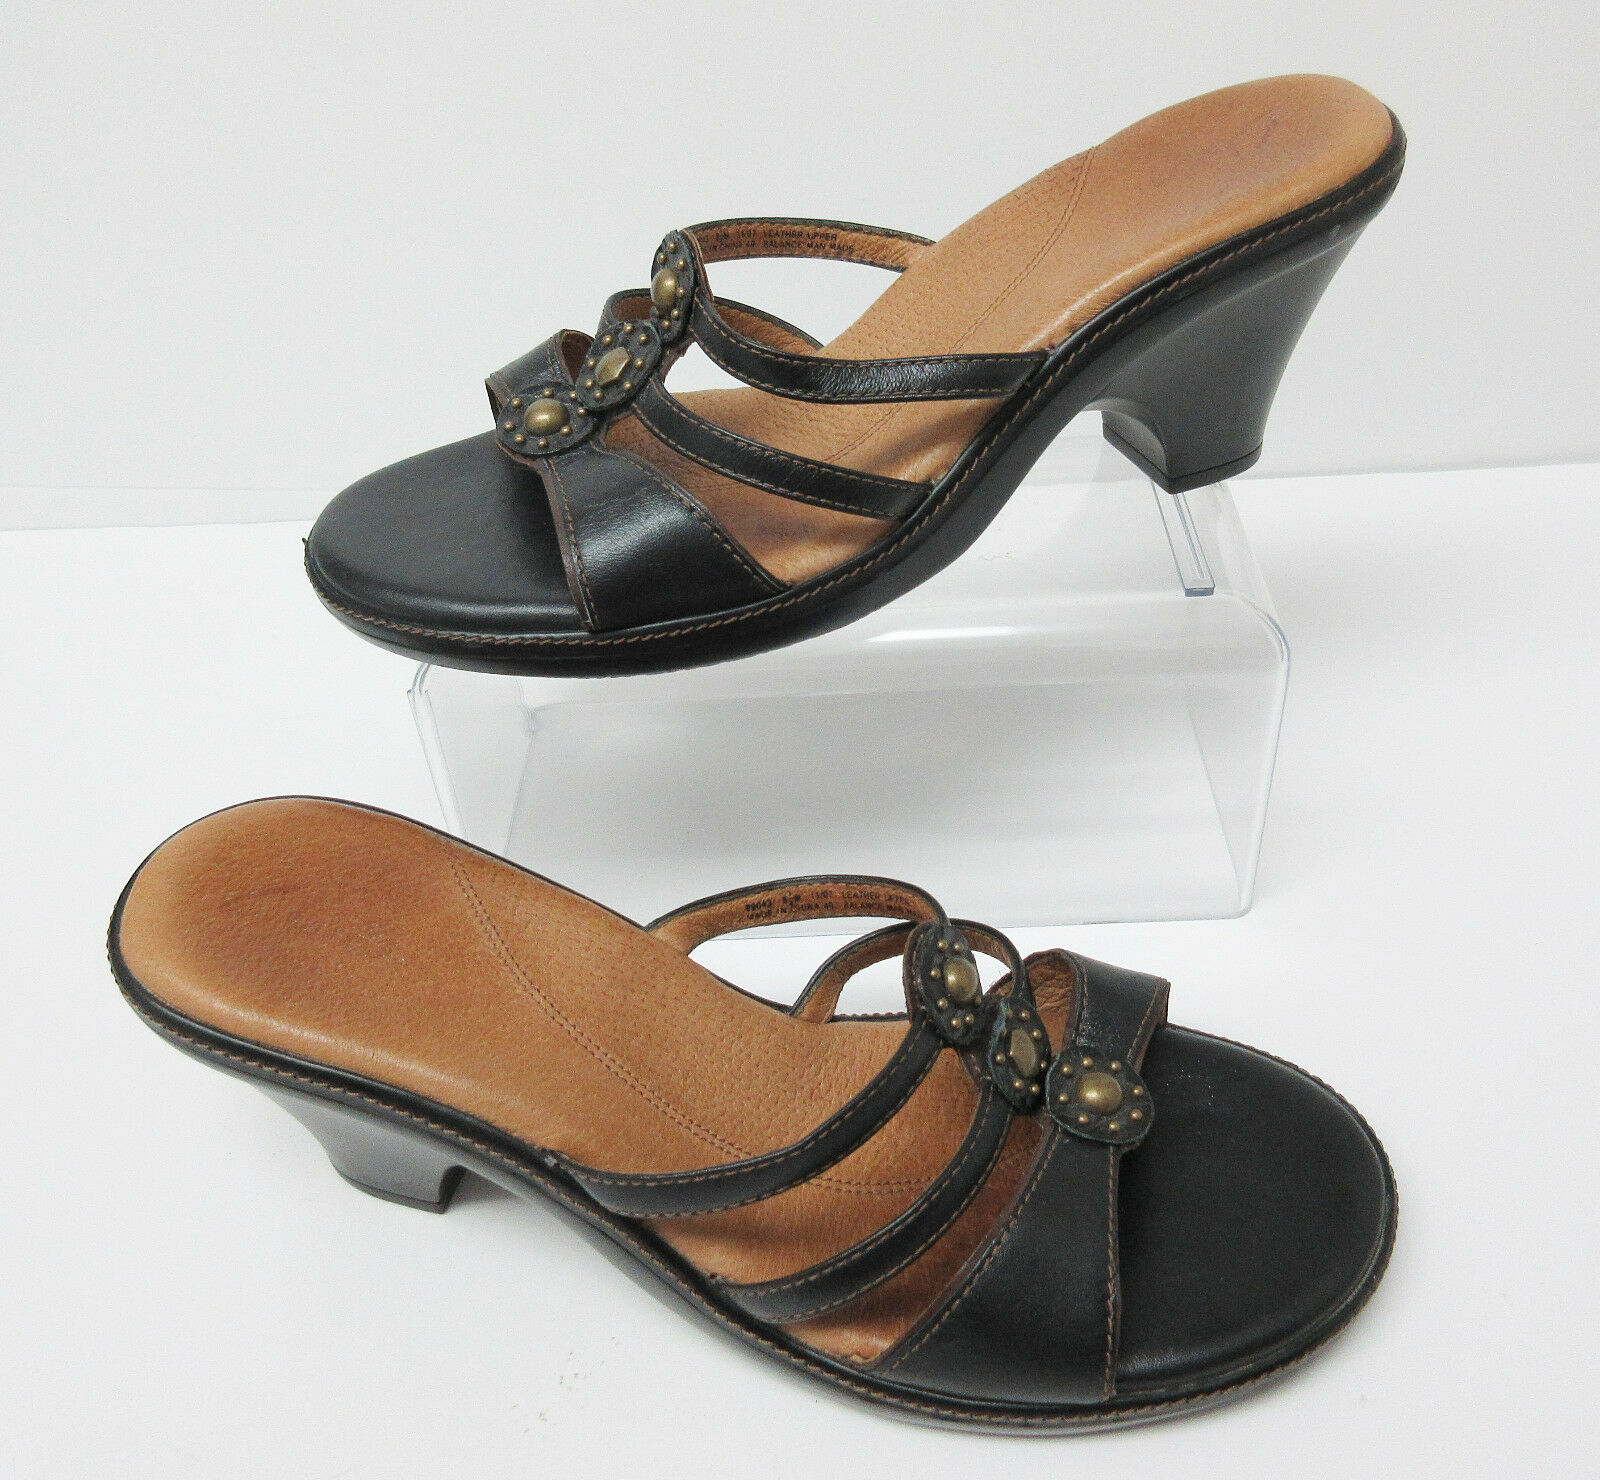 Clarks Women's Brown Leather Sandals 8.5 With Metal Accents Size 8.5 Sandals 61b52b